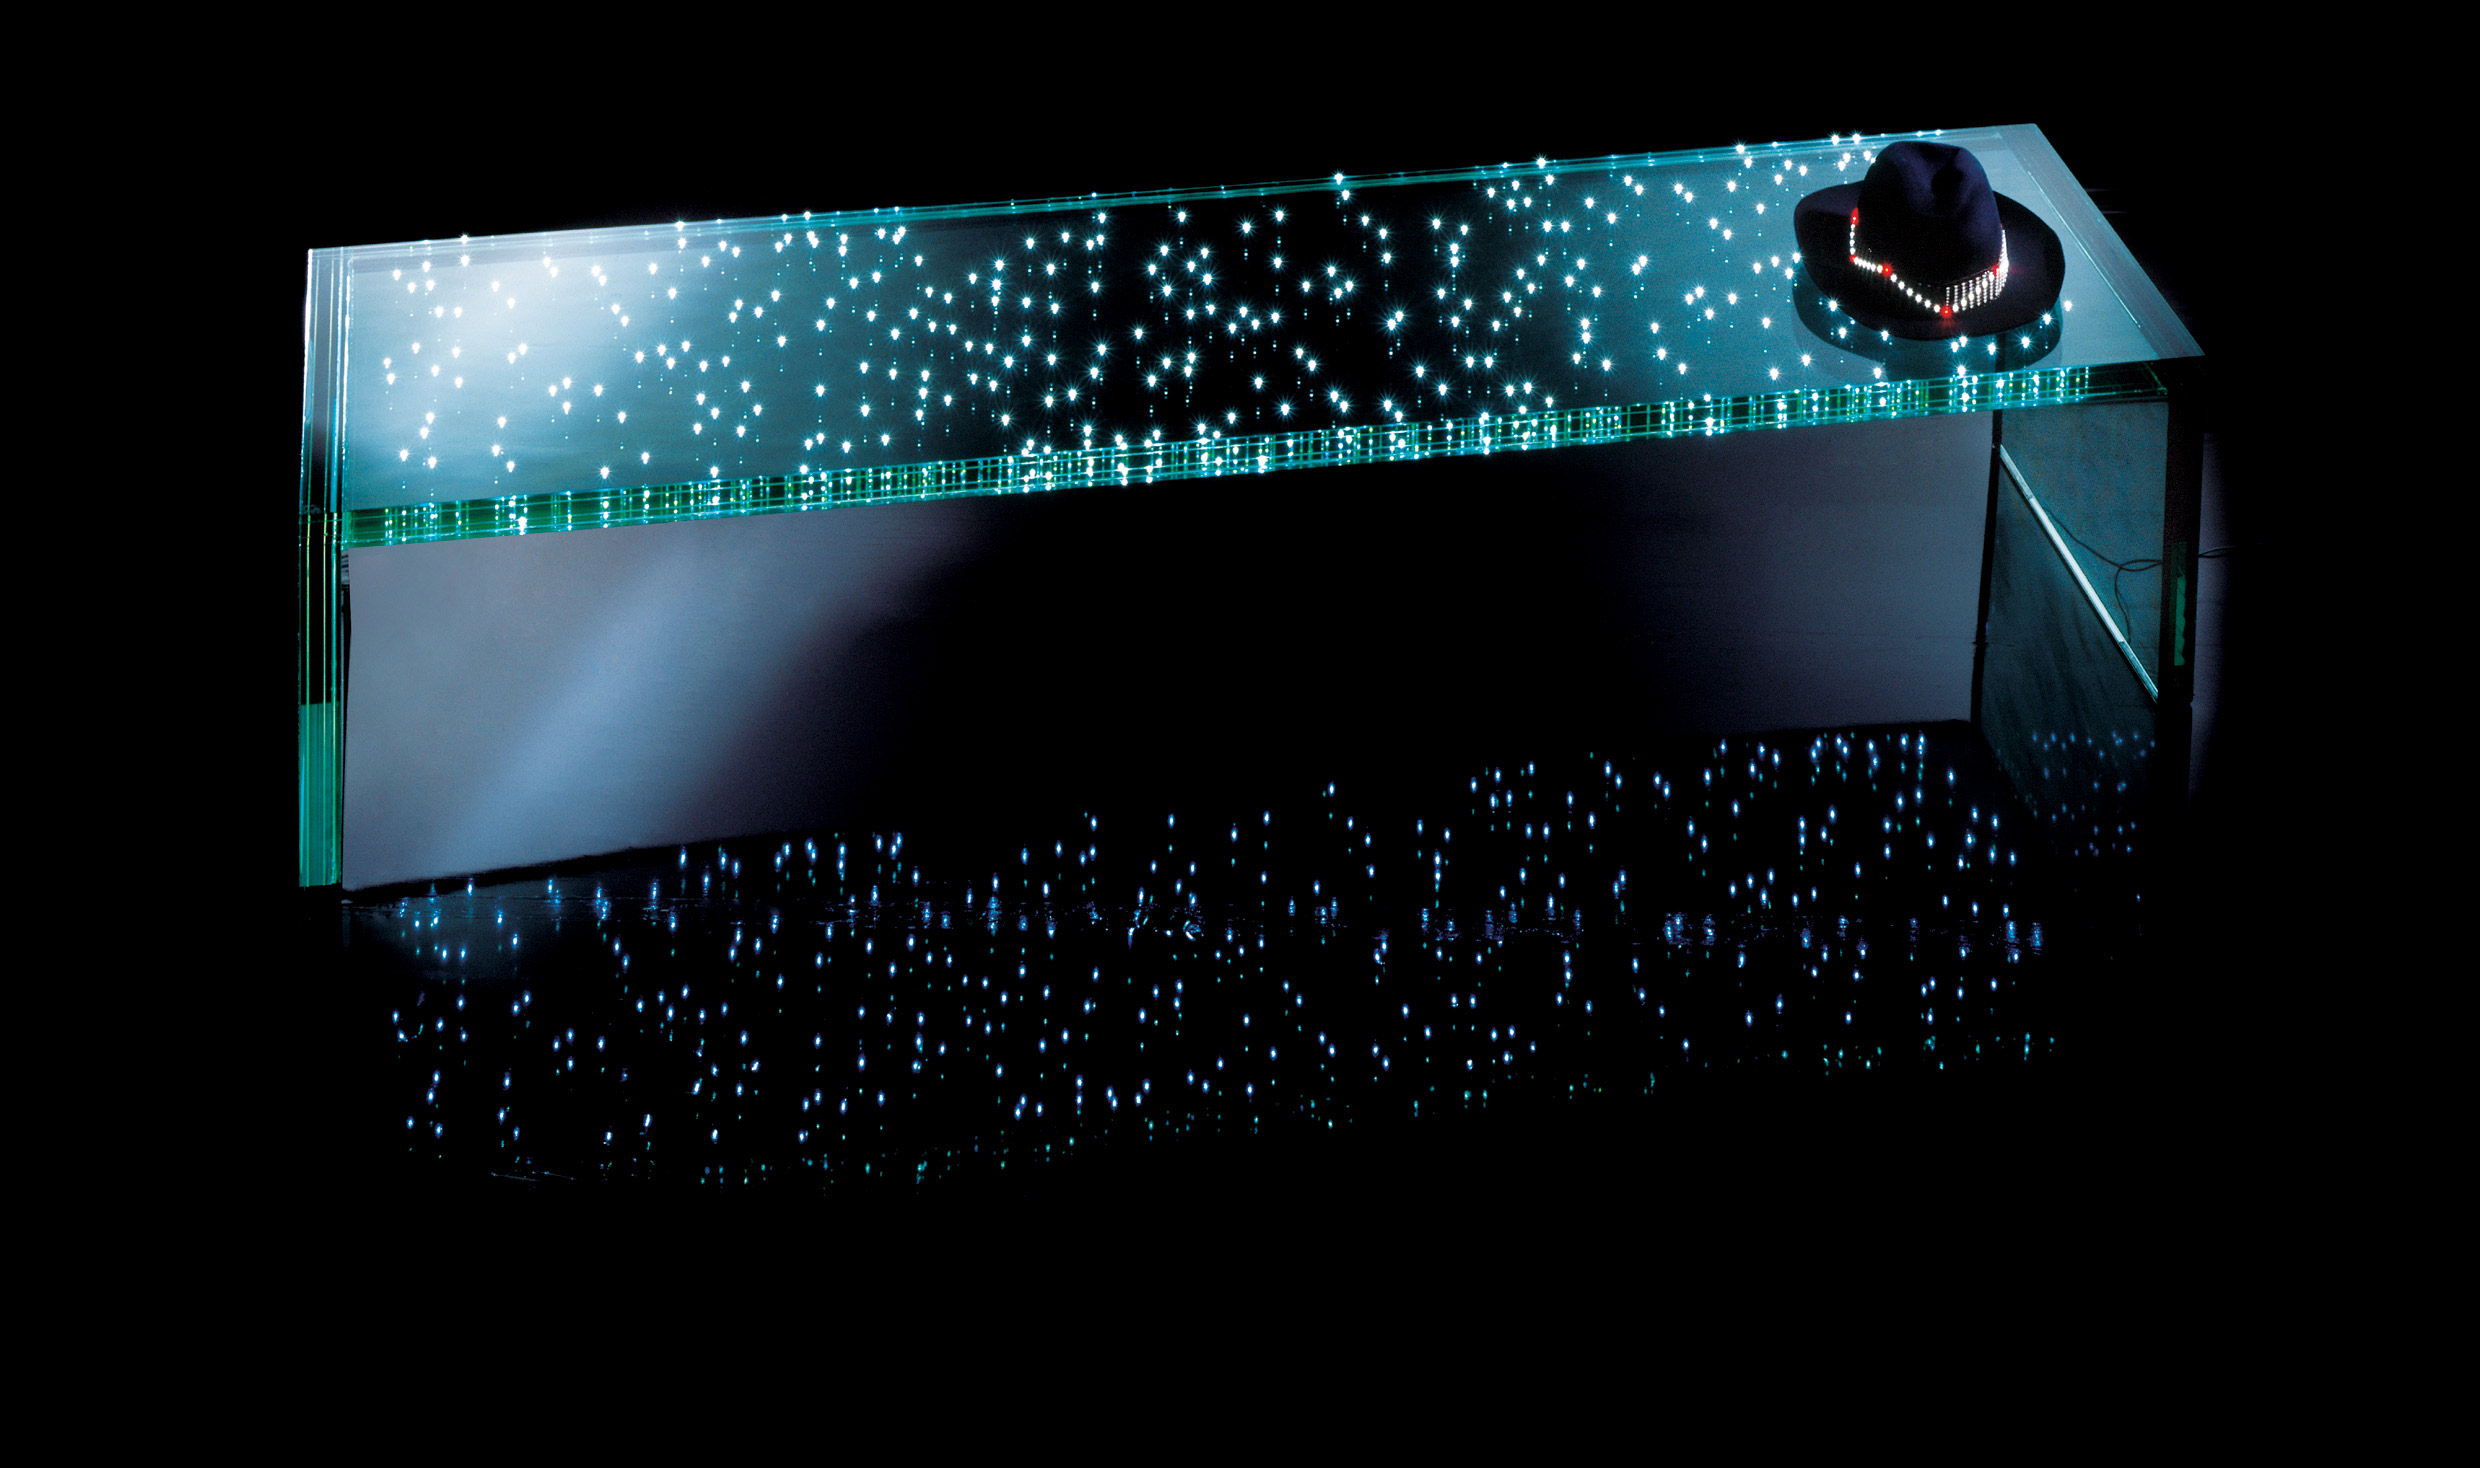 LED Bench by Ingo Maurer - LEDs are magically powered between two pieces of glass